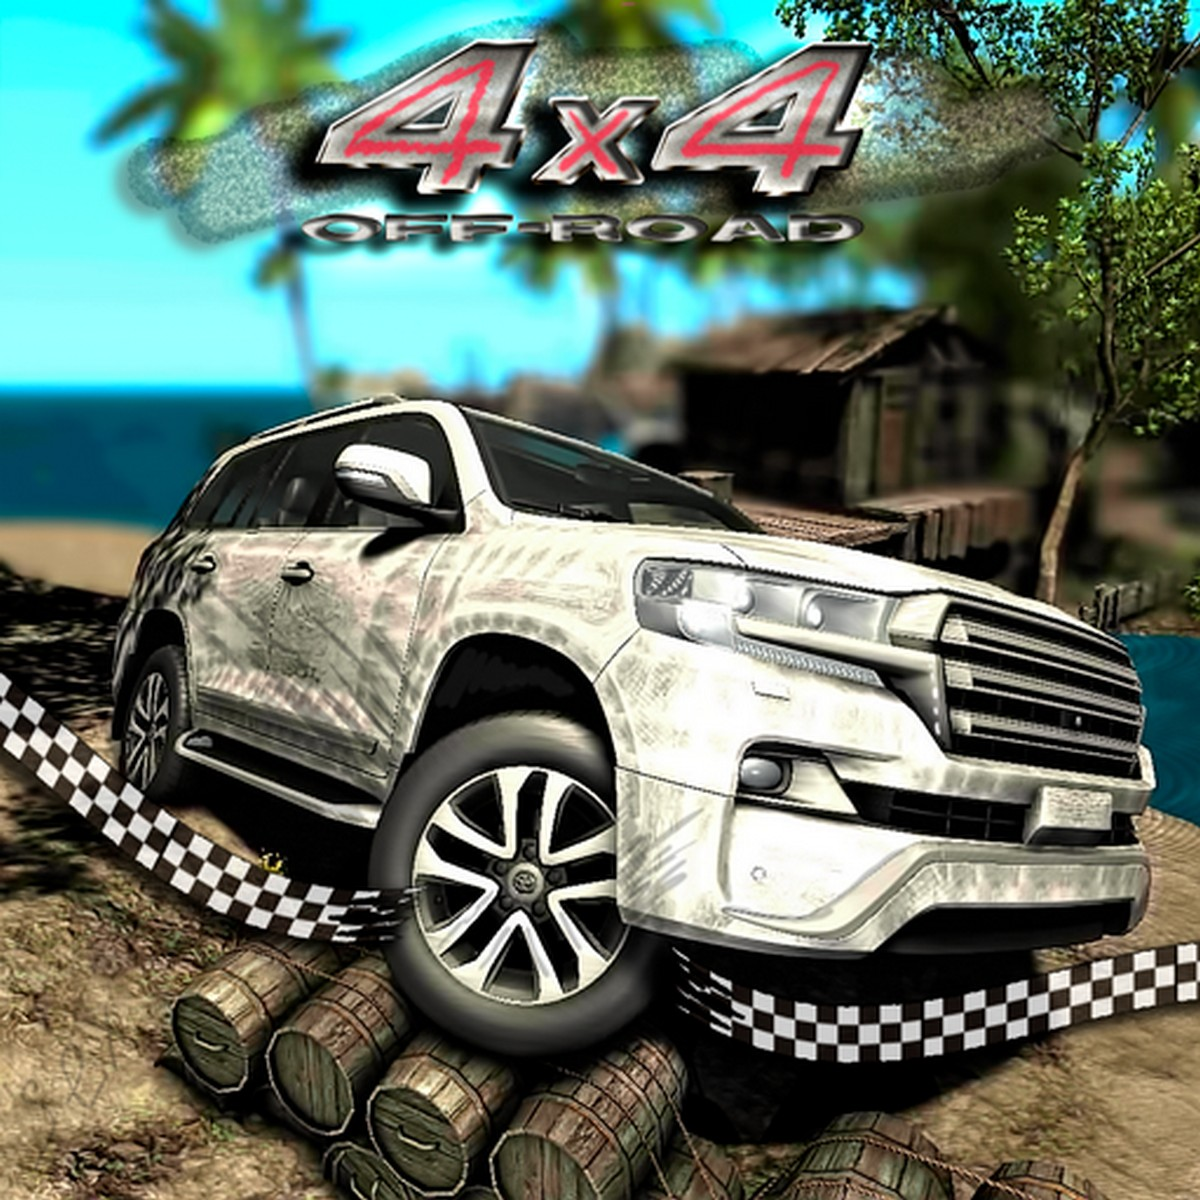 4×4 Off-Road Rally 7 APK MOD v5.5 (Dinero infinito) 1